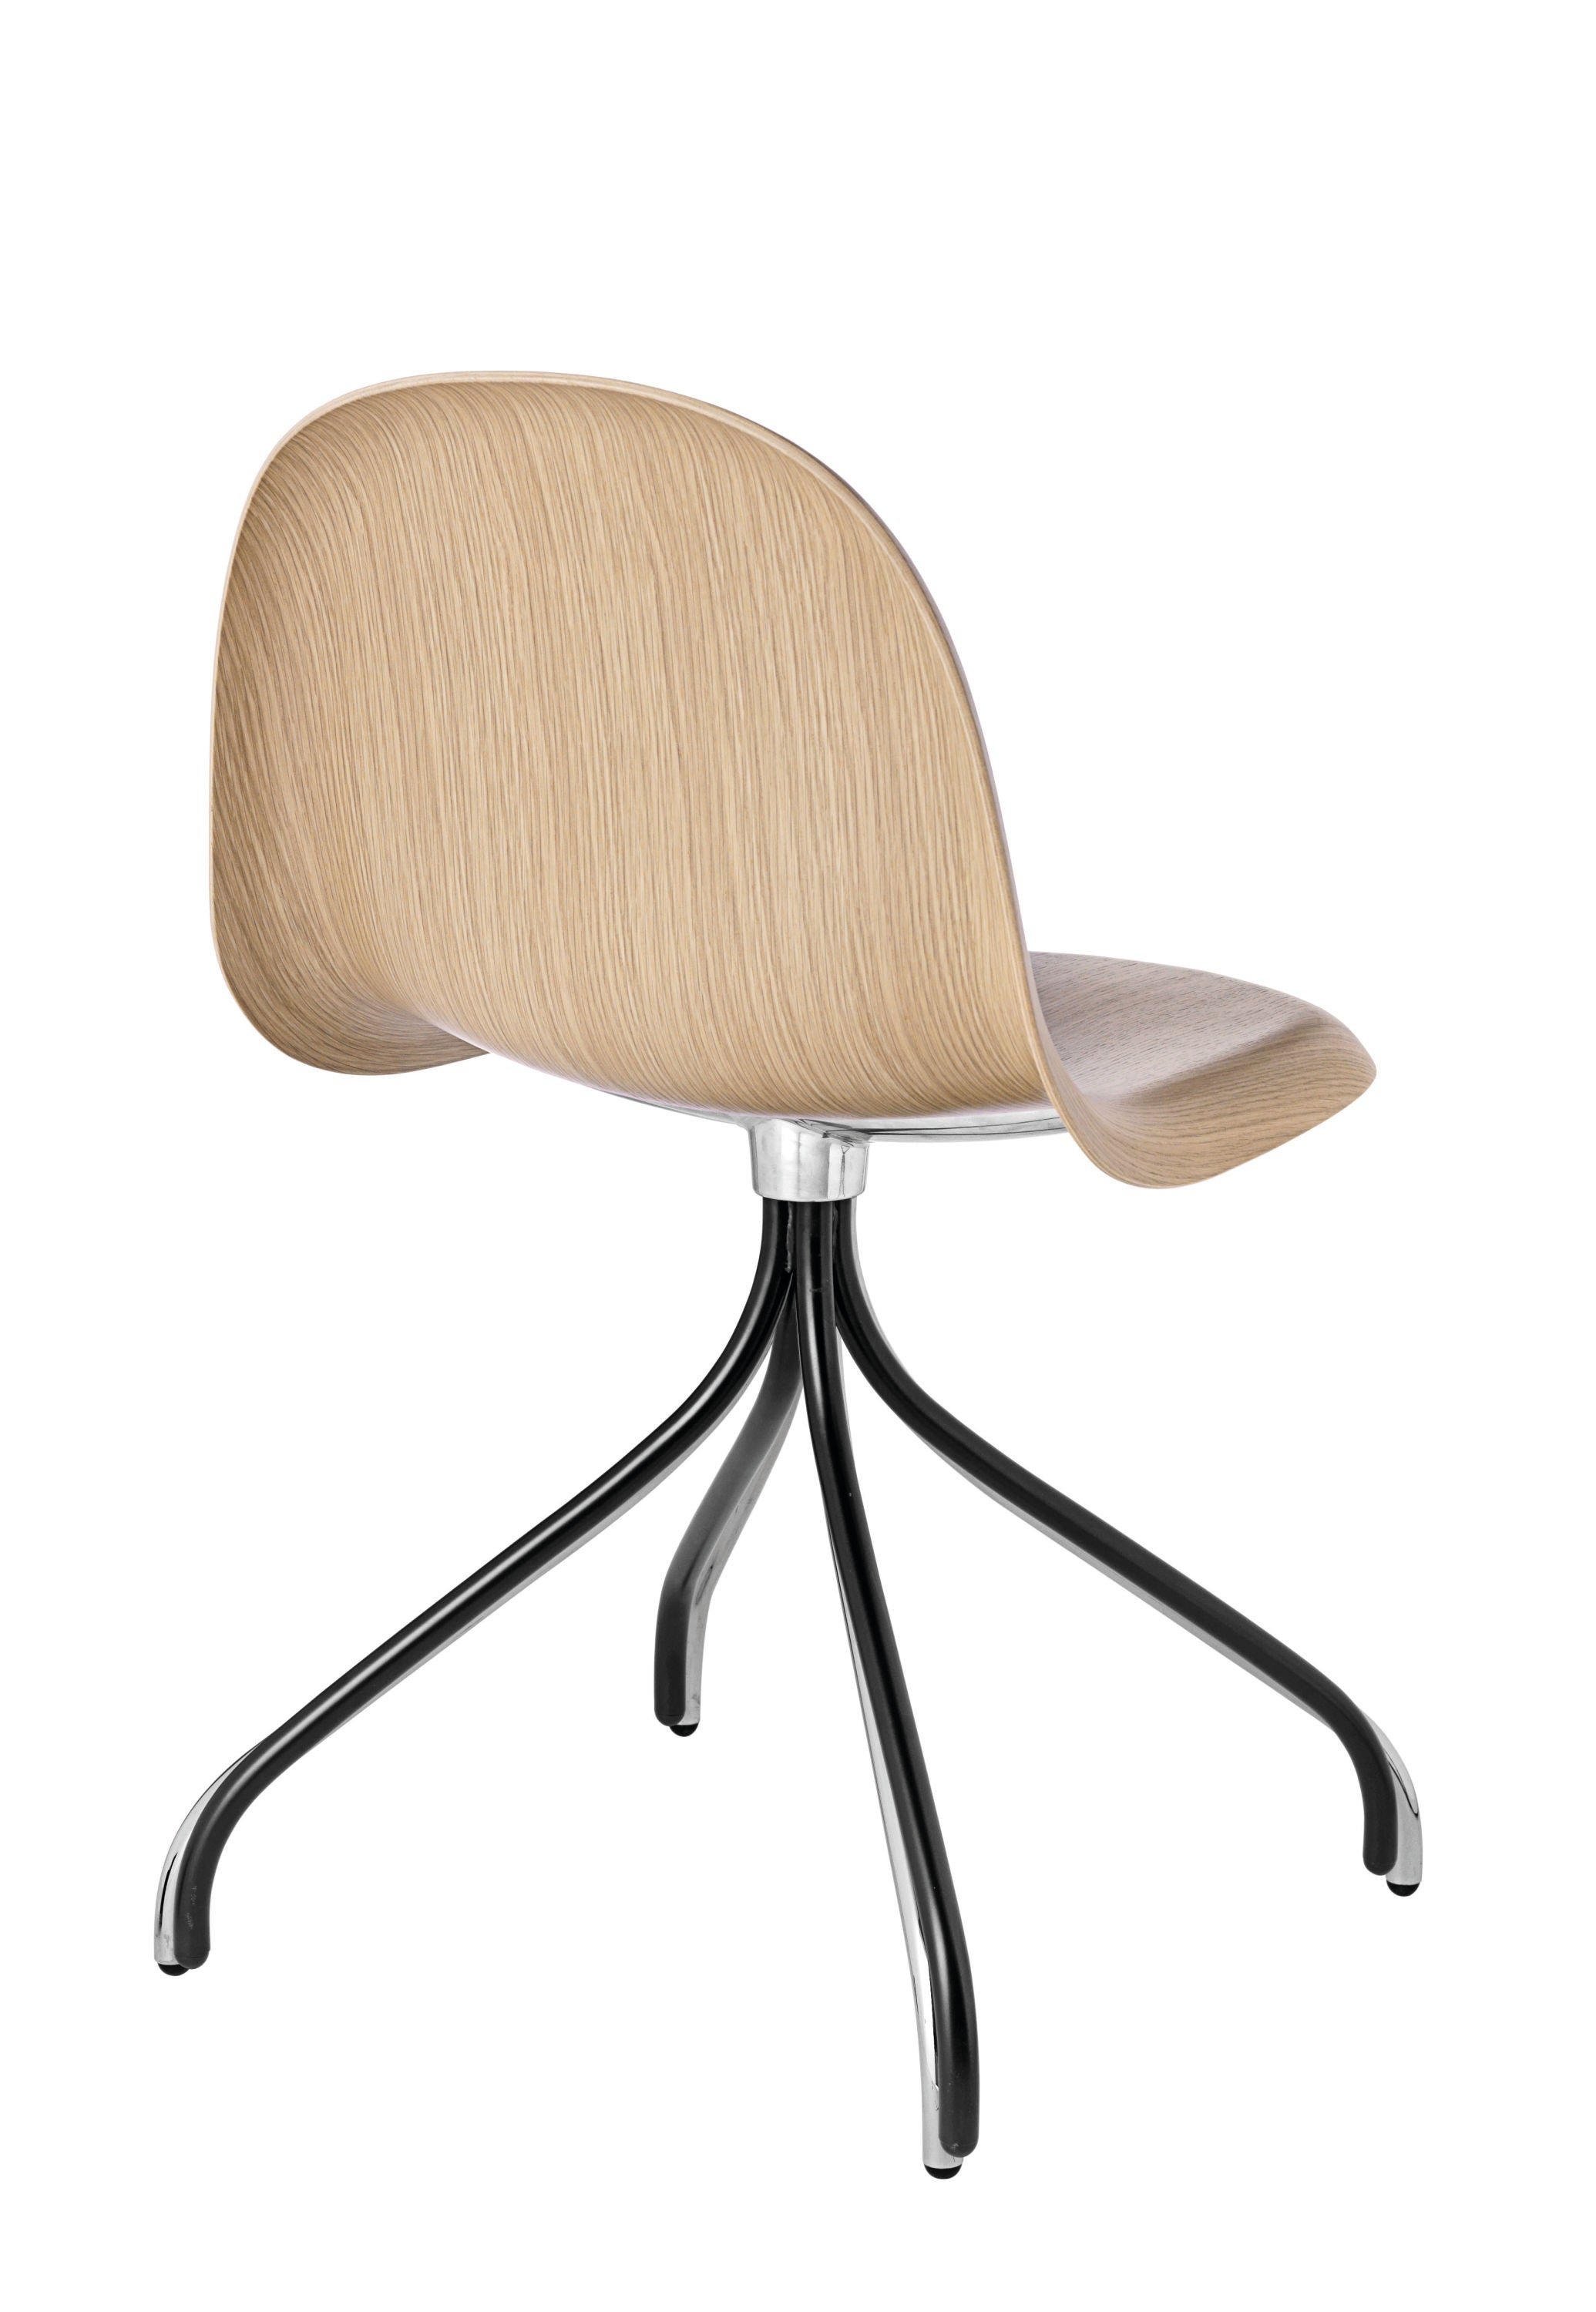 3D Dining Chair - Un-upholstered Swivel Black base, Oak shell fra GUBI